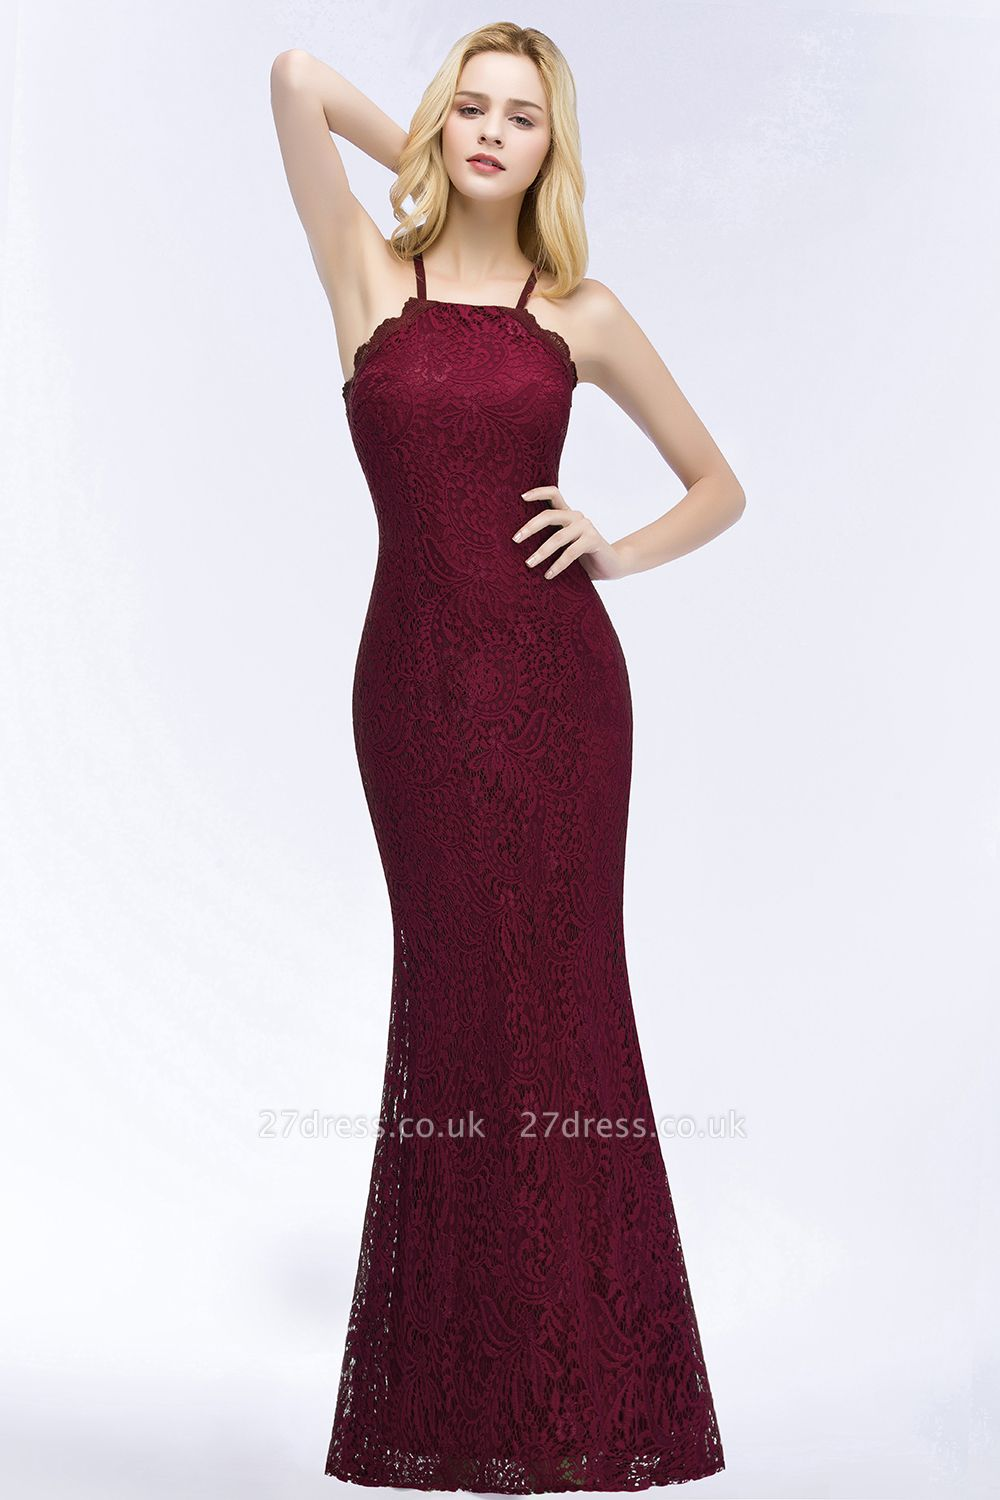 Elegant Mermaid Floor Length Halter Lace Burgundy Bridesmaid Dress UK UKes